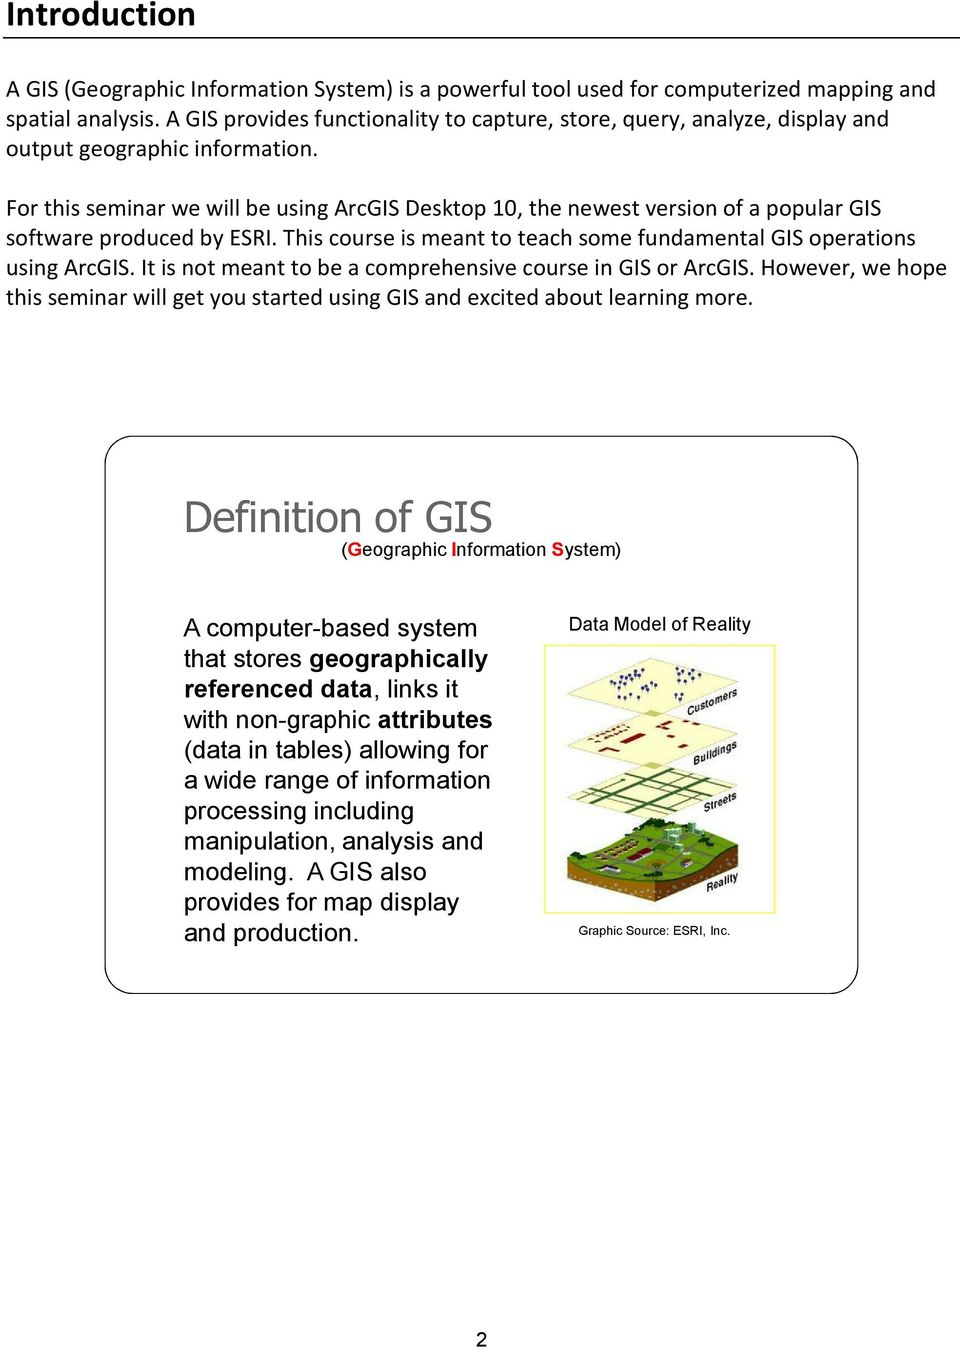 For this seminar we will be using ArcGIS Desktop 10, the newest version of a popular GIS software produced by ESRI. This course is meant to teach some fundamental GIS operations using ArcGIS.